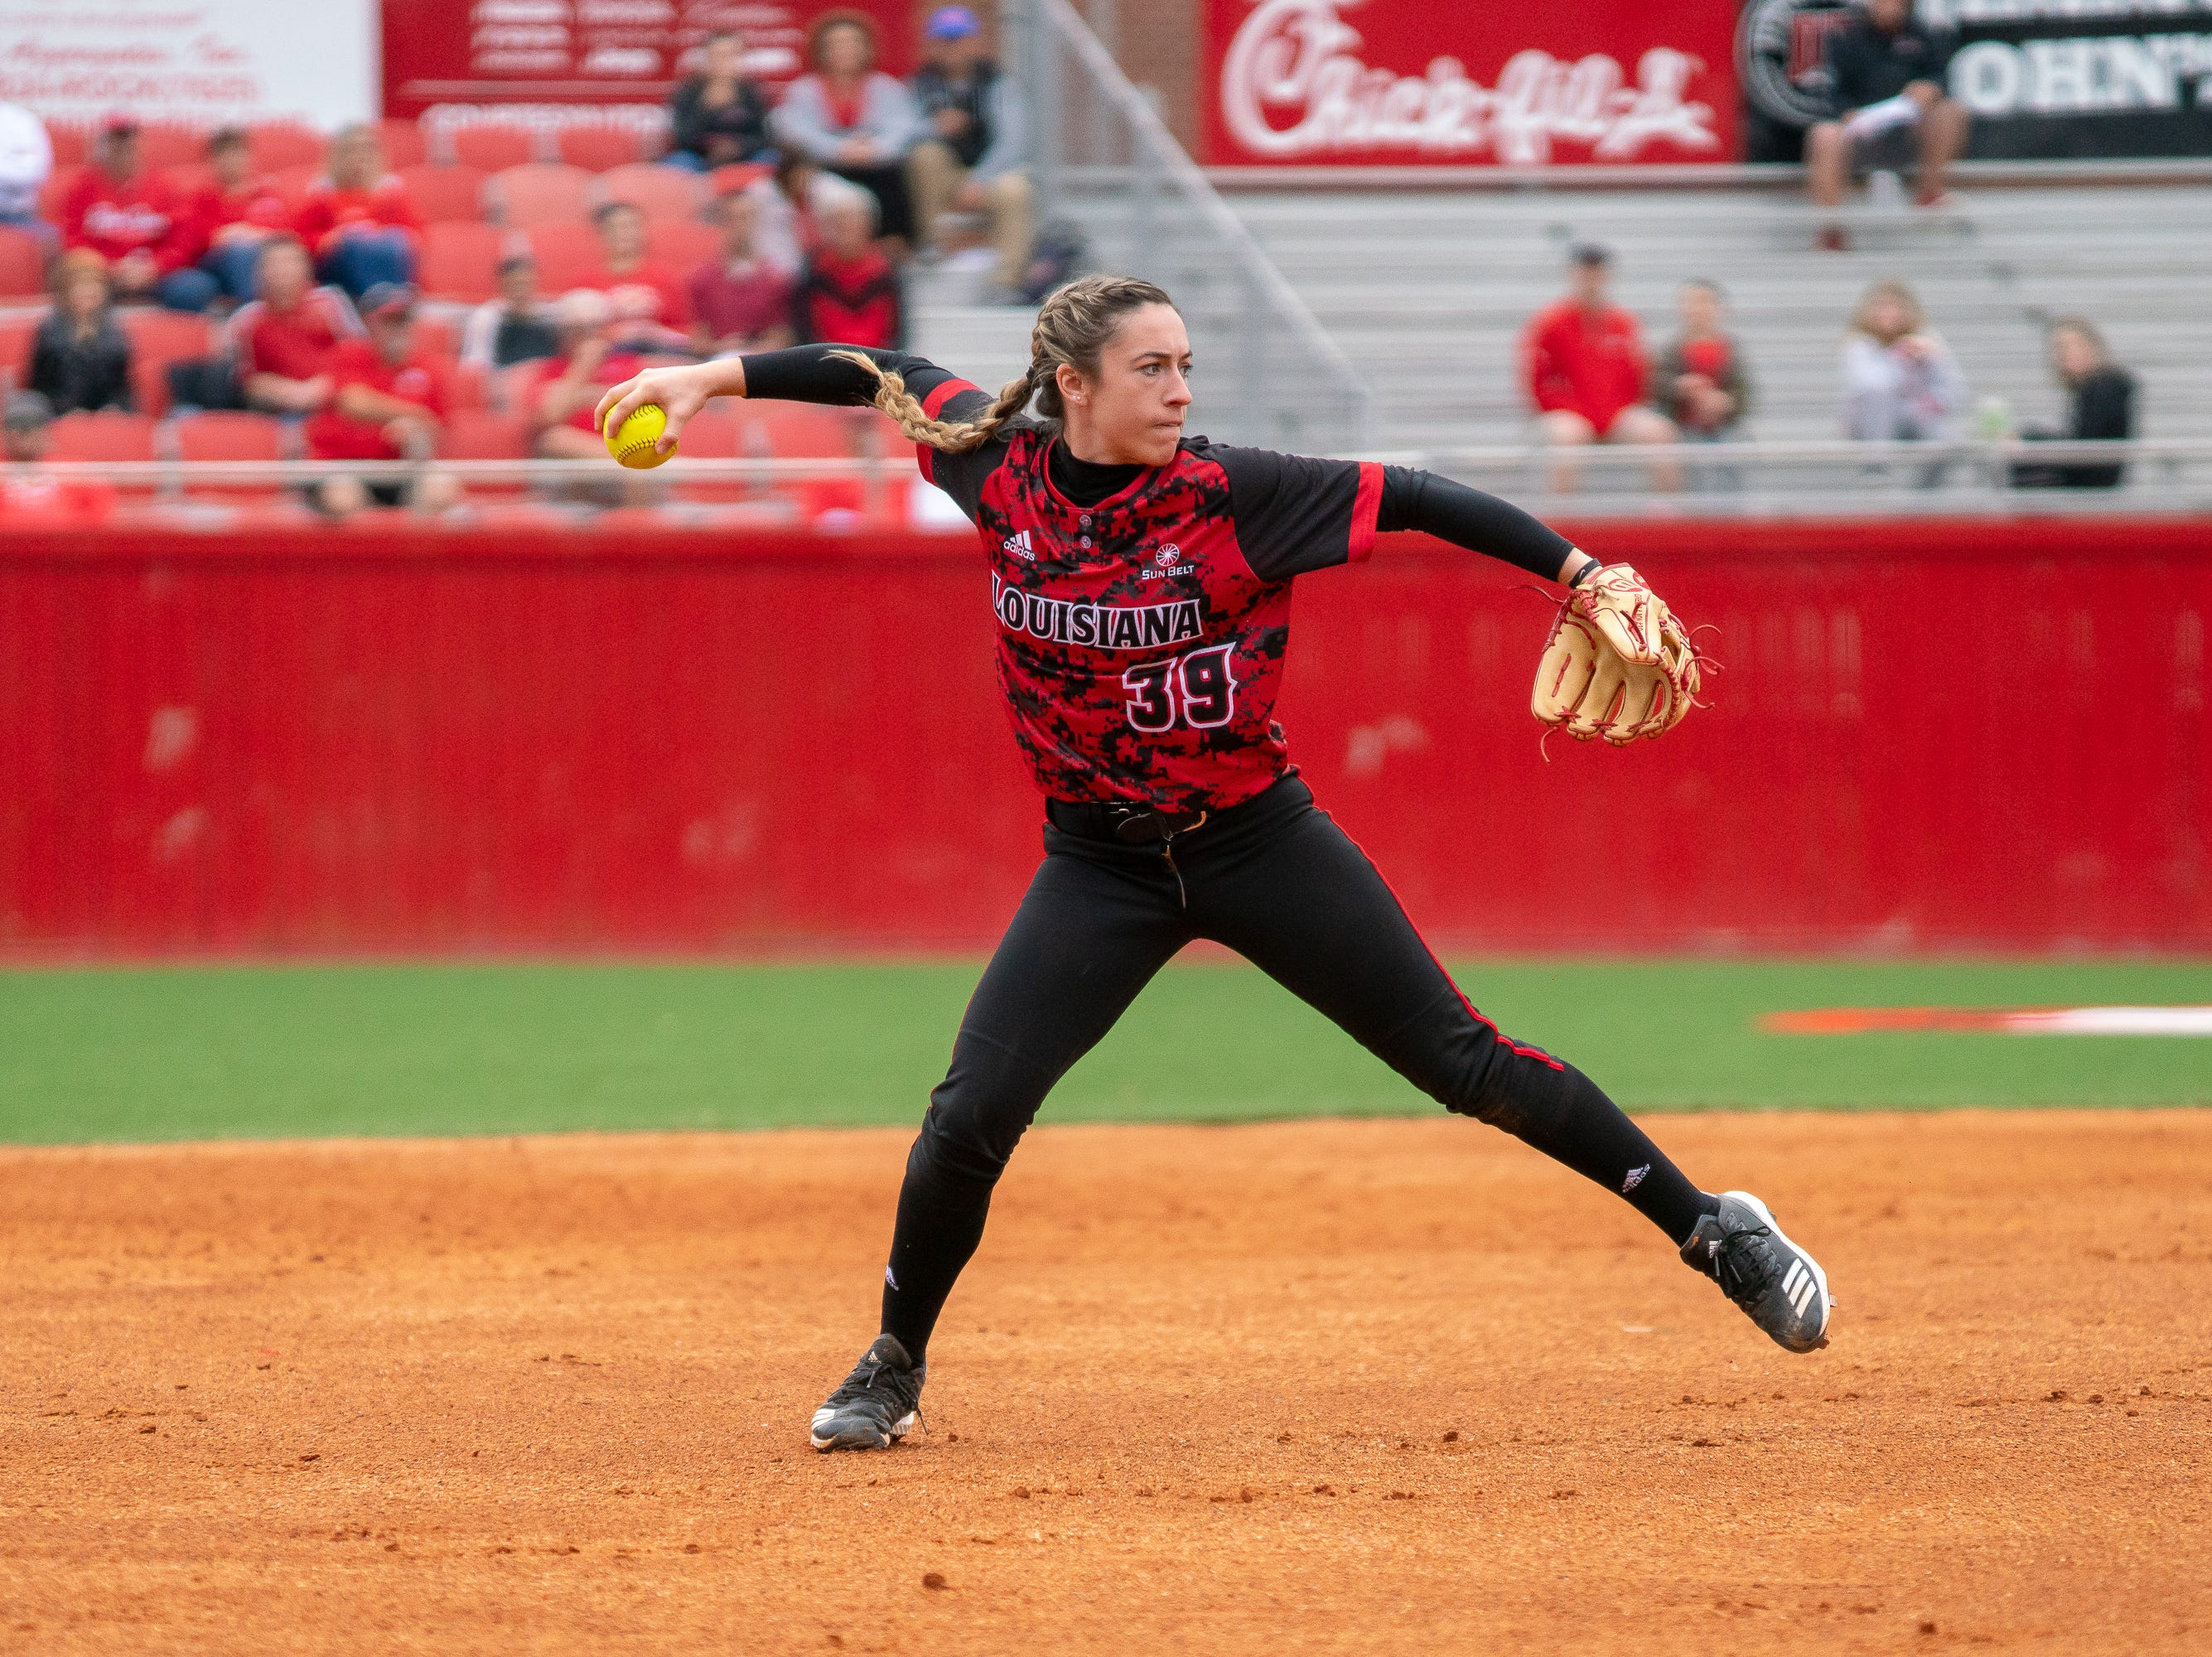 UL's Kara Gremillion throws the ball to first base as the Ragin' Cajuns take on Stephen F. Austin at Lamson Park on Saturday, Feb. 16, 2019.